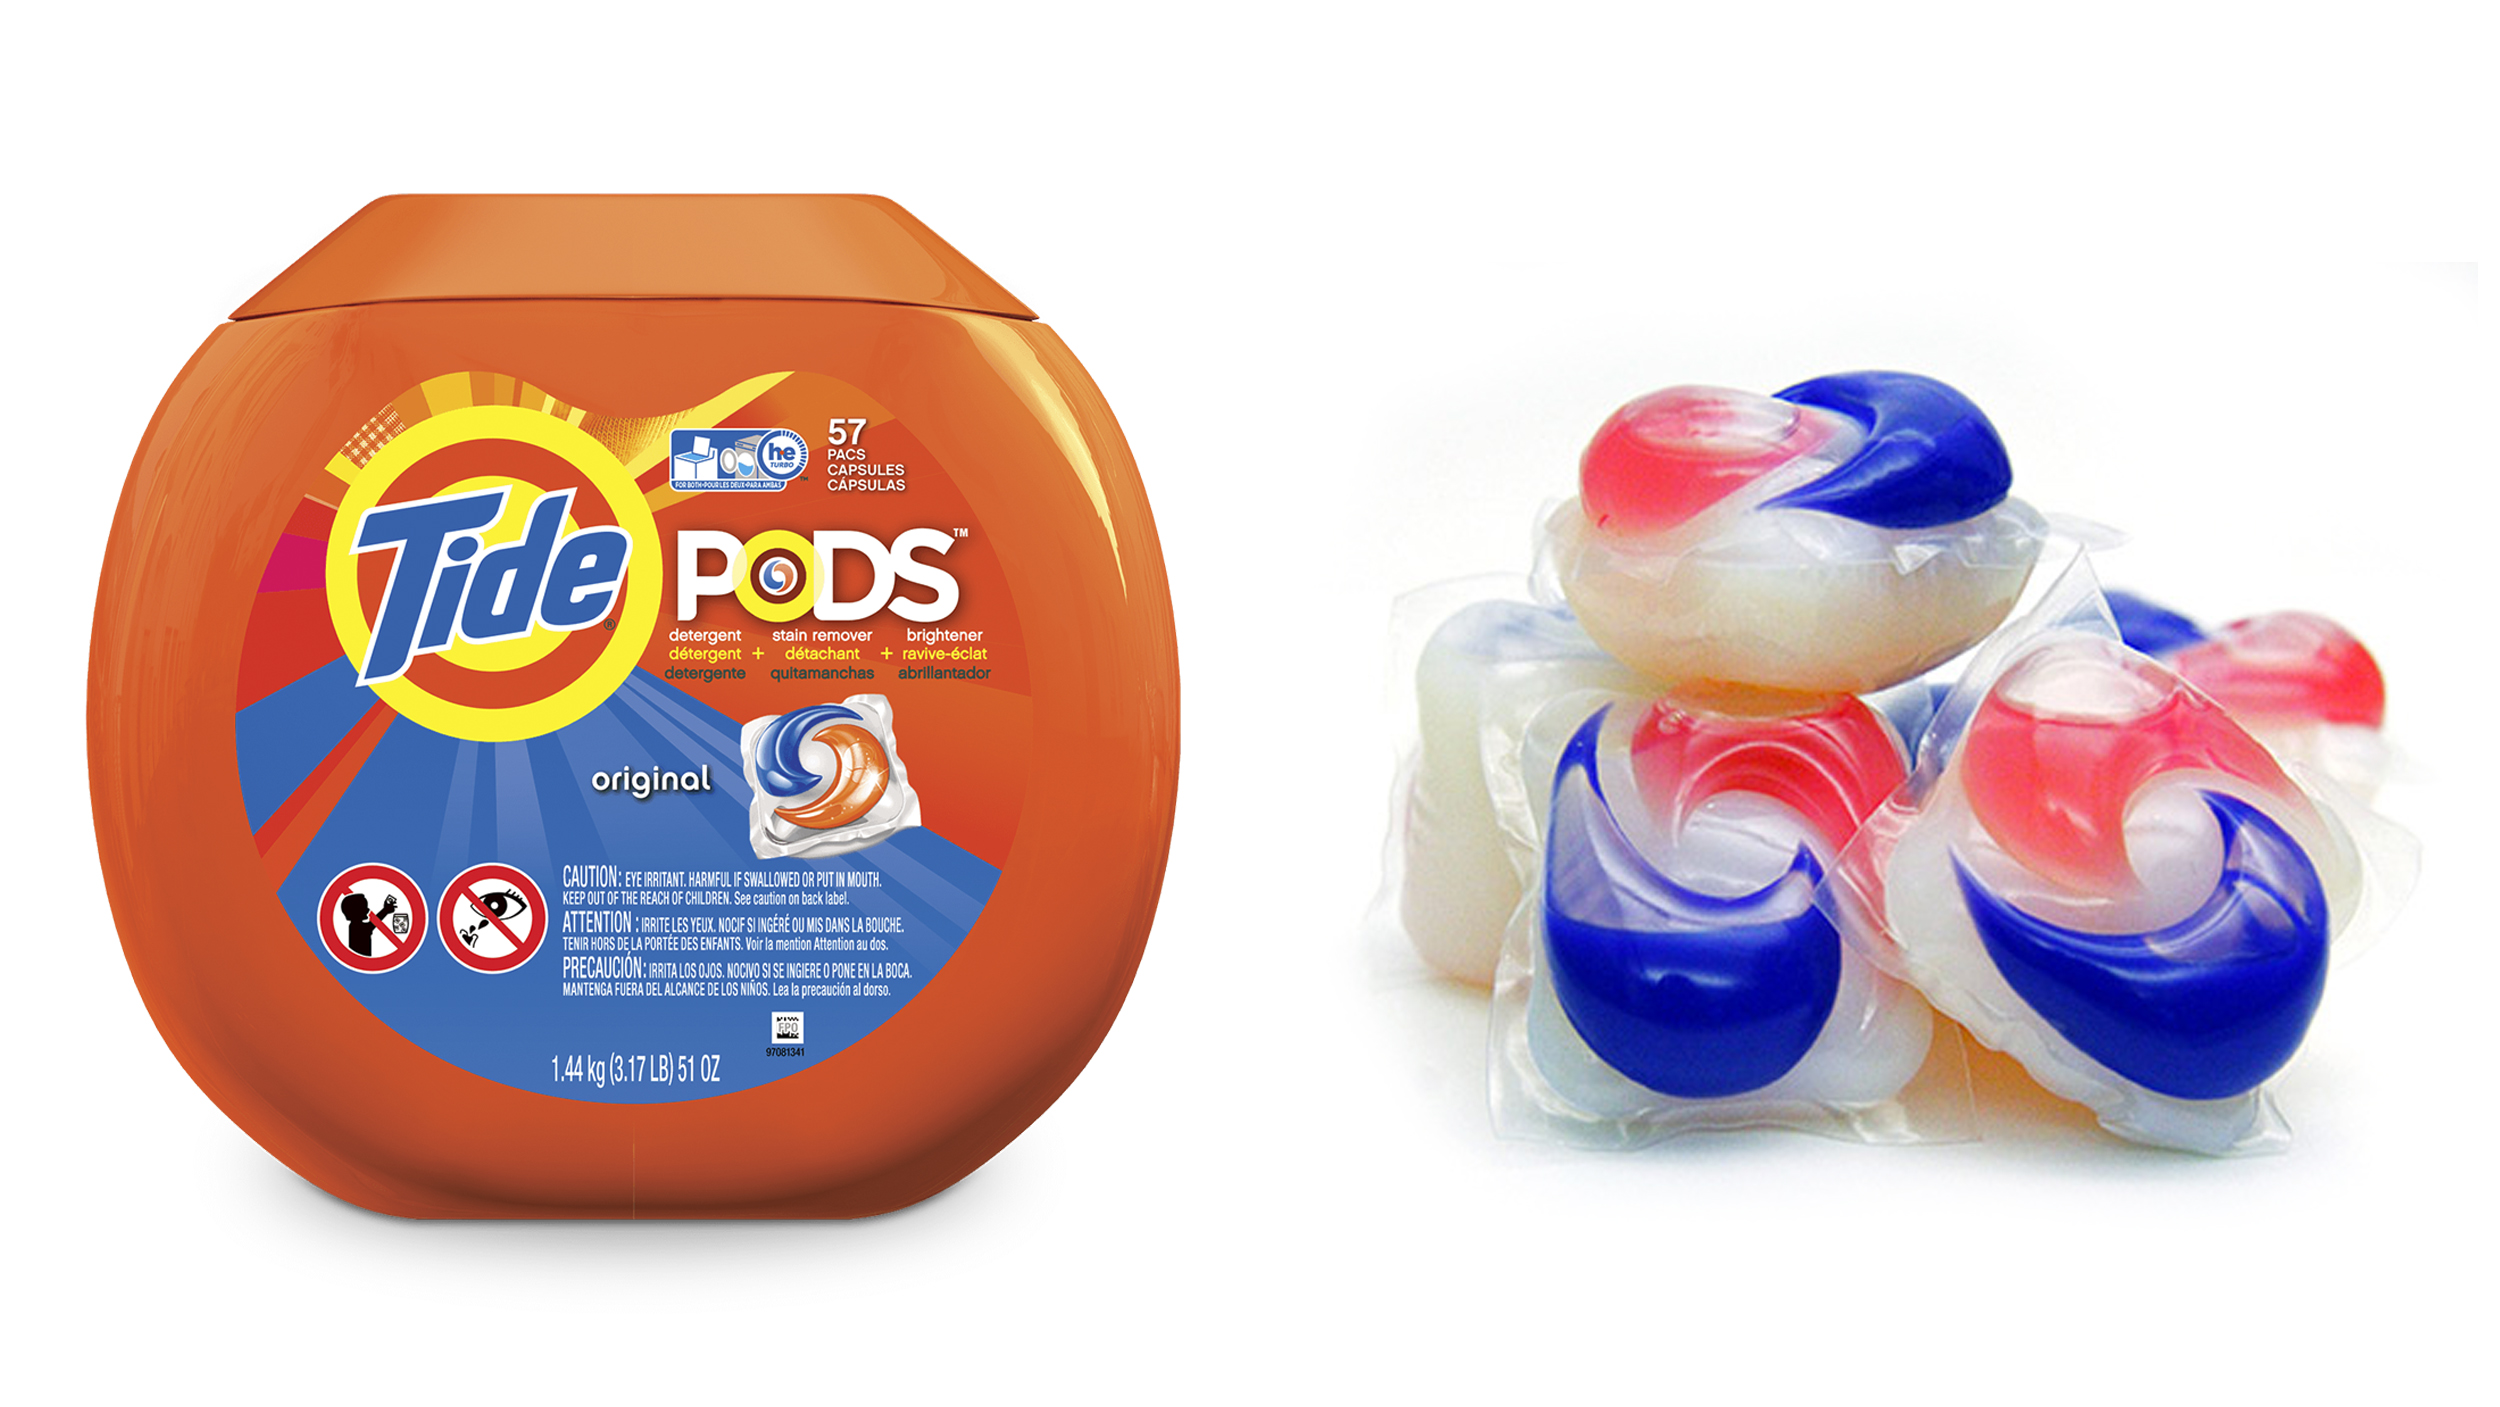 tide pods proctor gamble says to use 3 per load